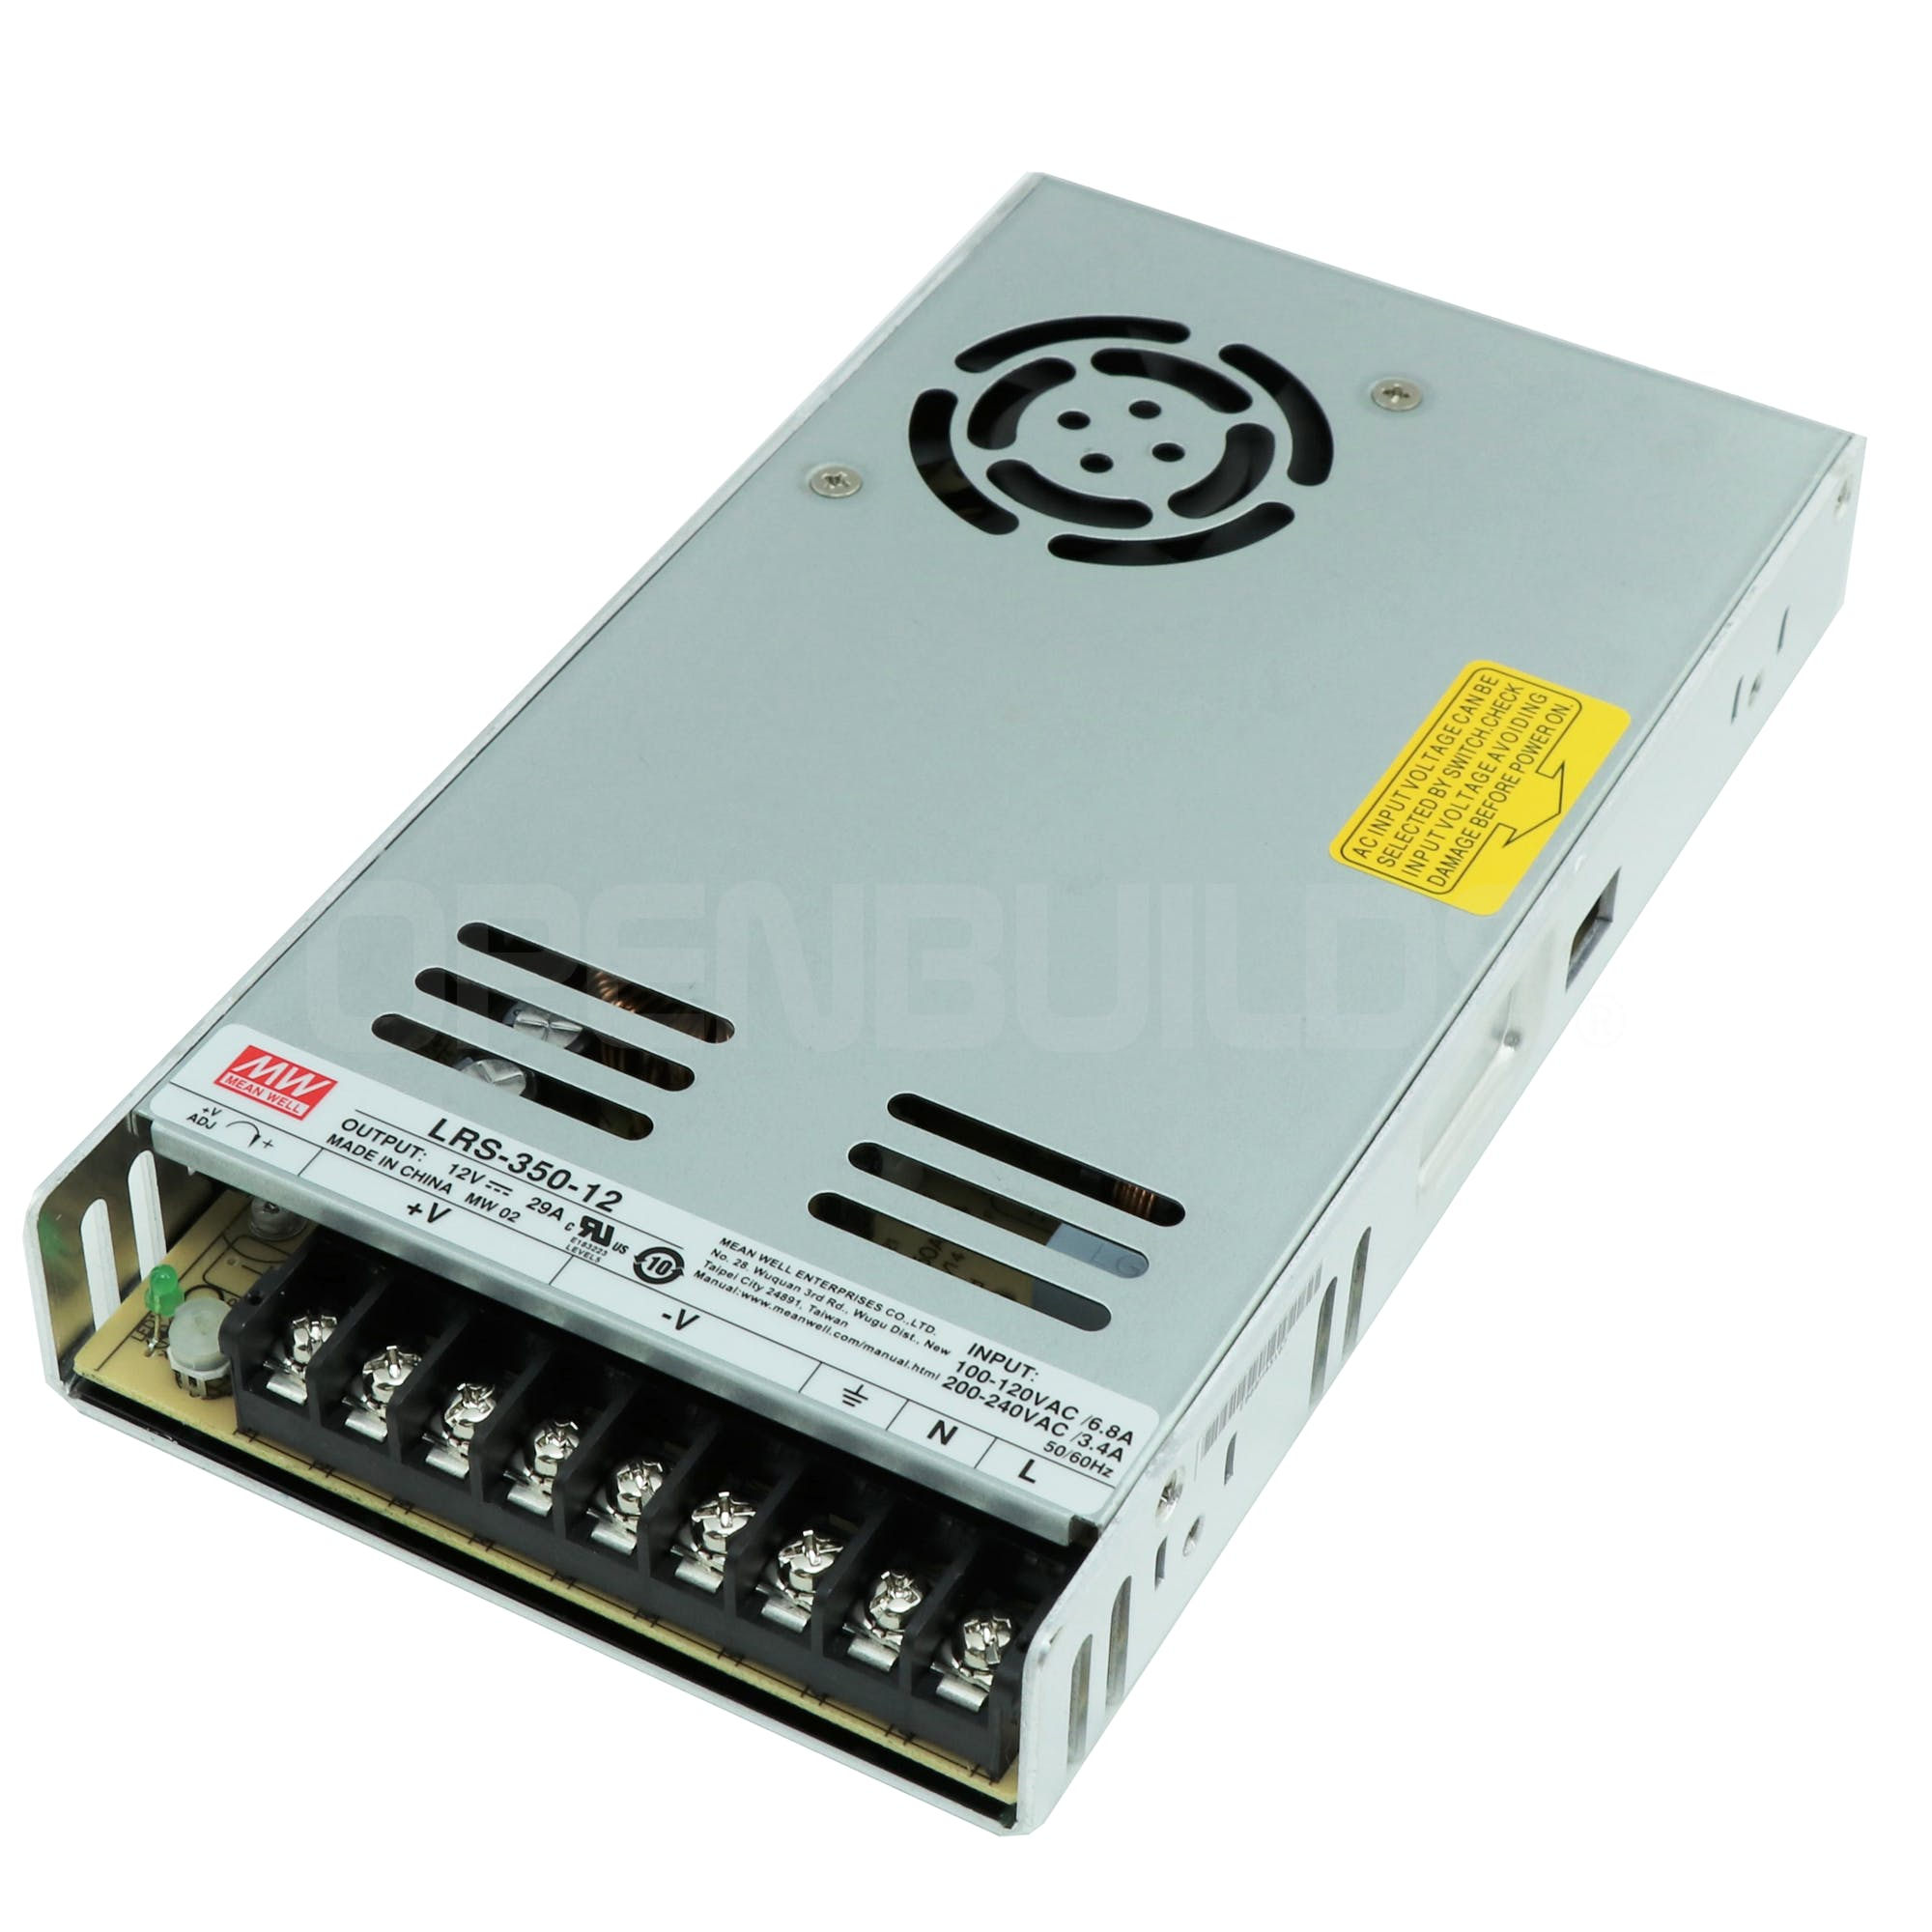 12v power supply dllt6notjg